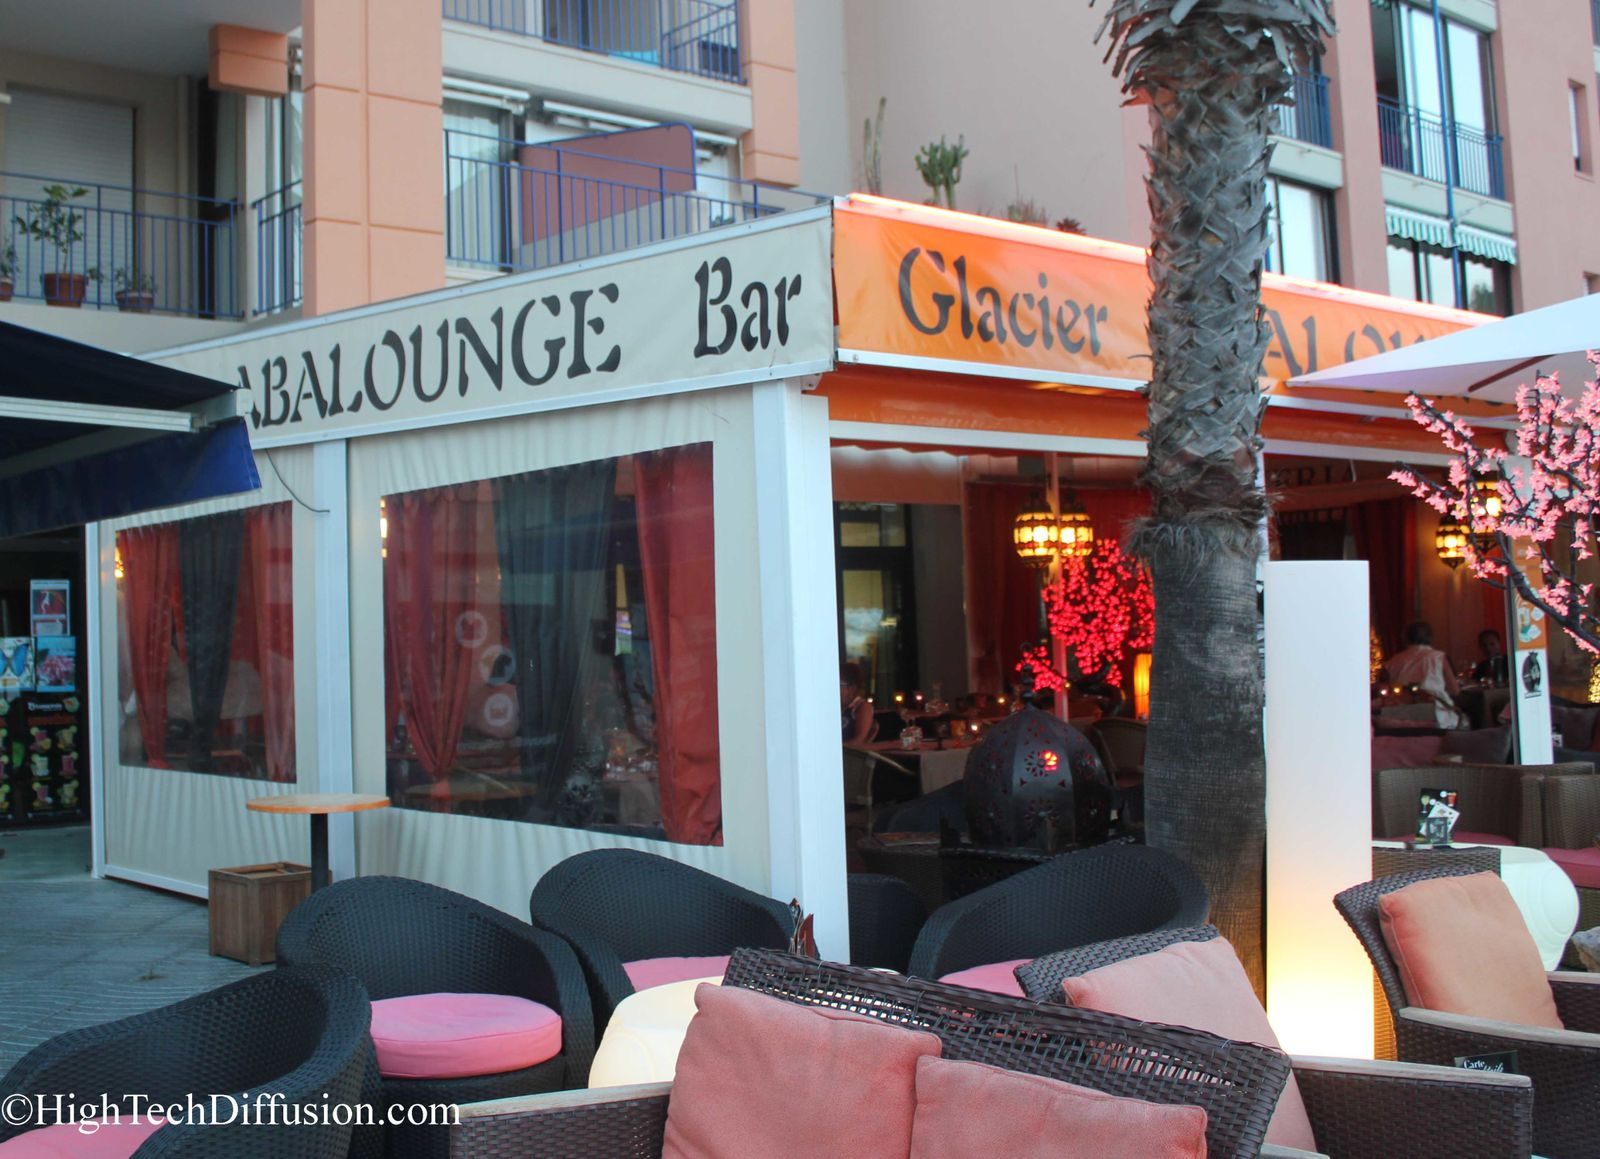 HighTechDiffusion.com partenaire d'Abalounge Bar